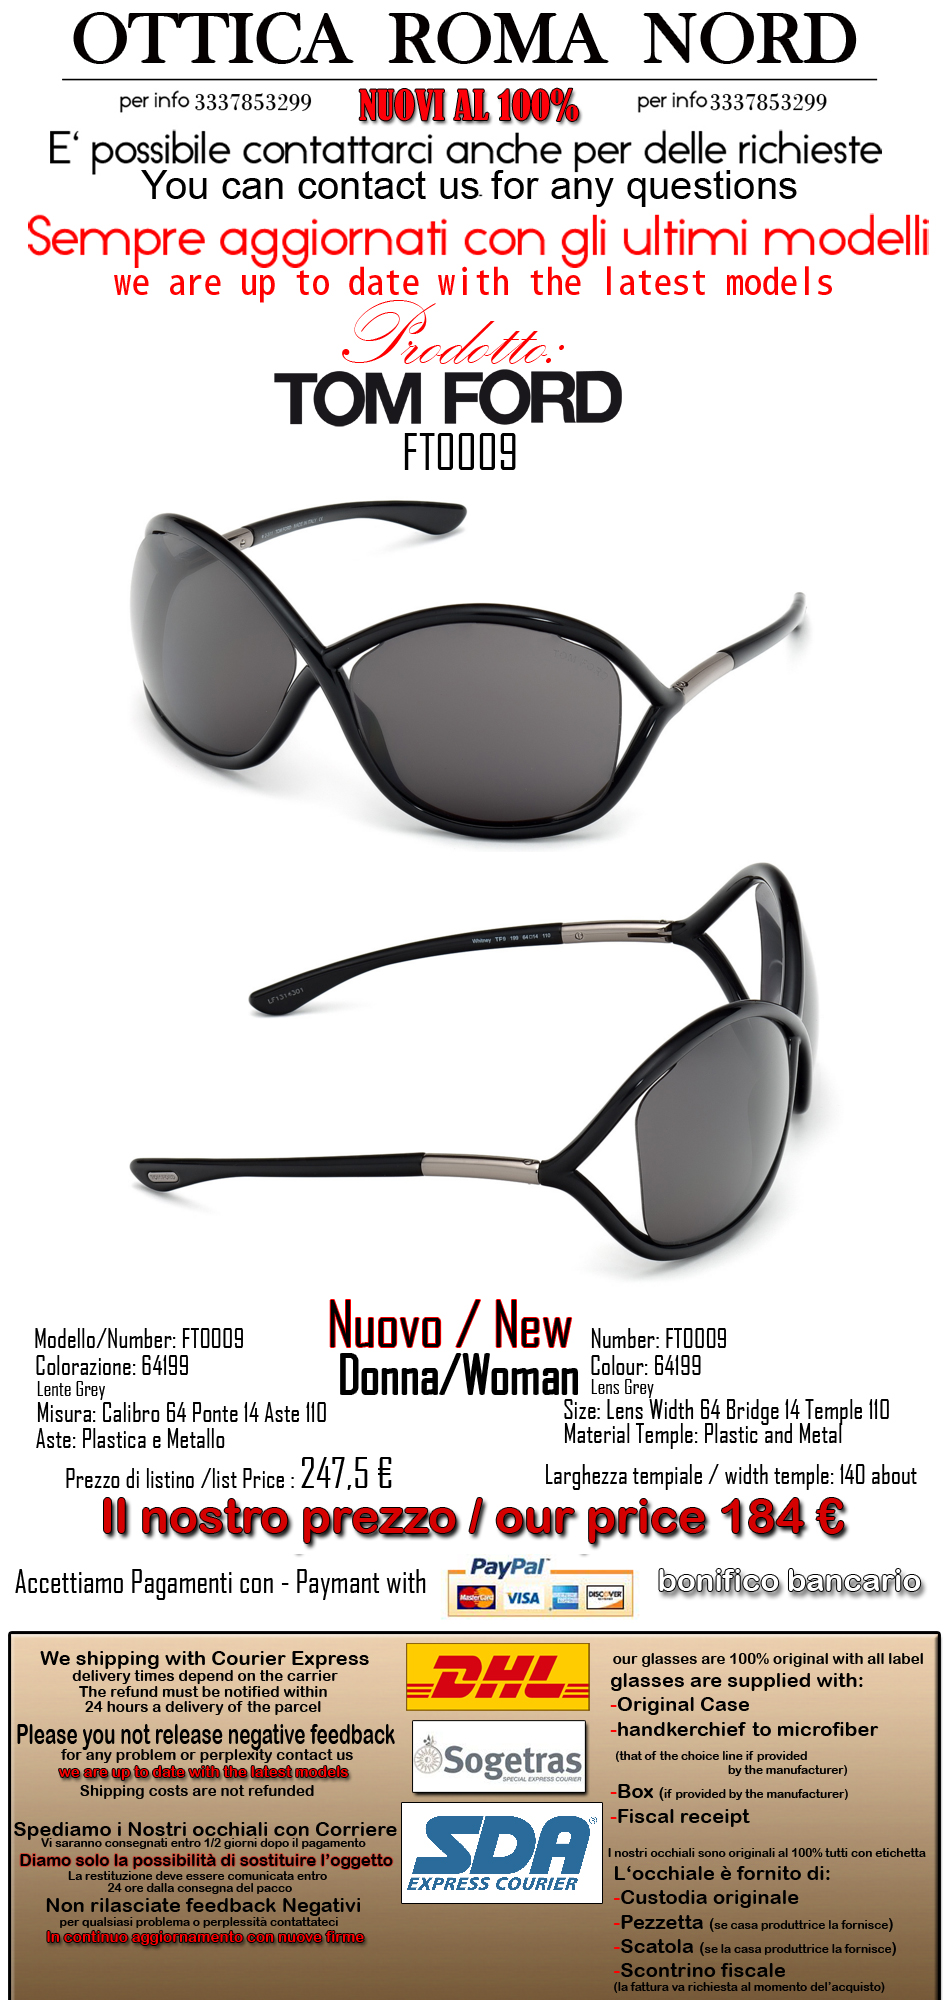 c547b724a2 TOM FORD FT 0009 WHITNEY 199 NOUVELLE COLLECTION LUNETTES DE SOLEIL ...